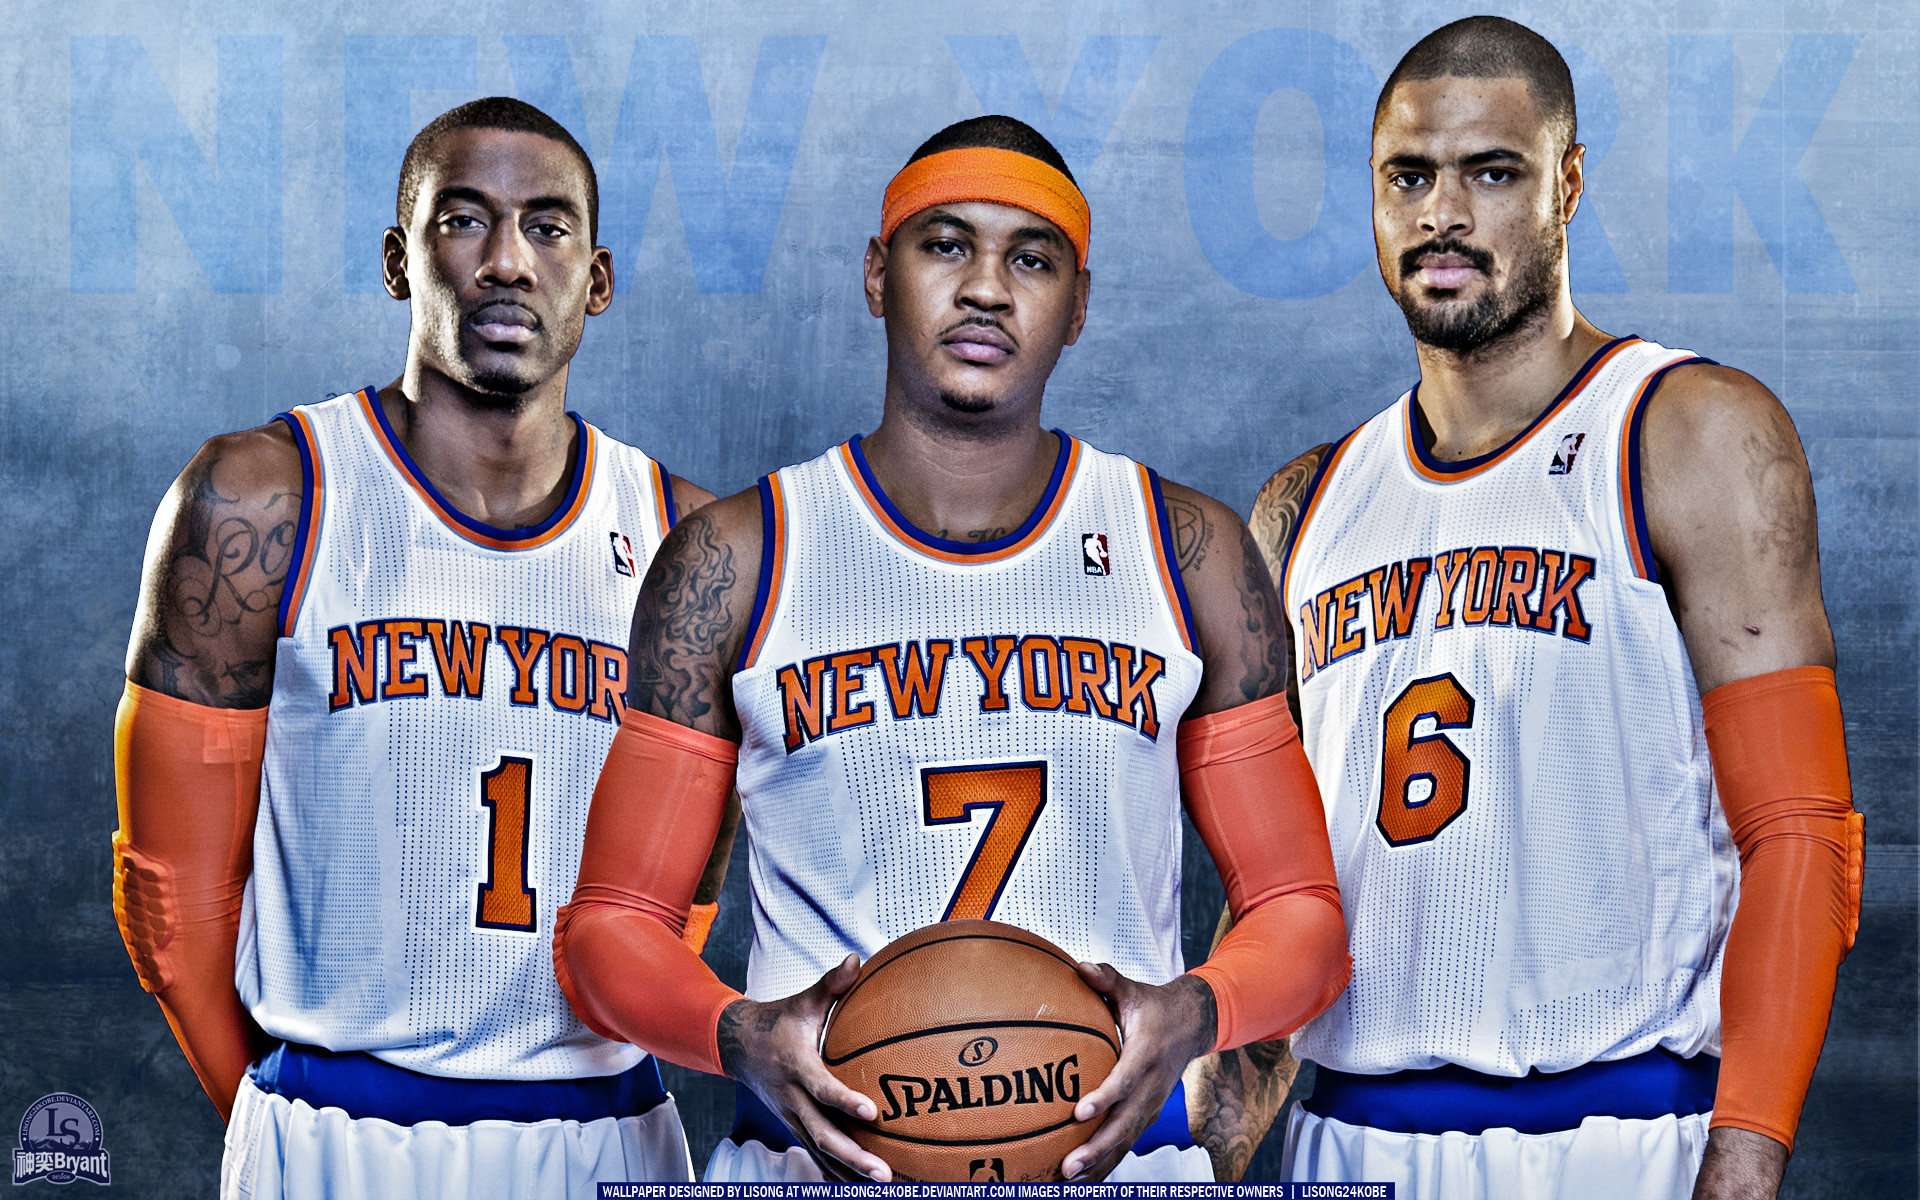 1920x1200 Knicks' New Year's Resolutions Should Be Defense and Rebounding By Jerald  L. Hoover